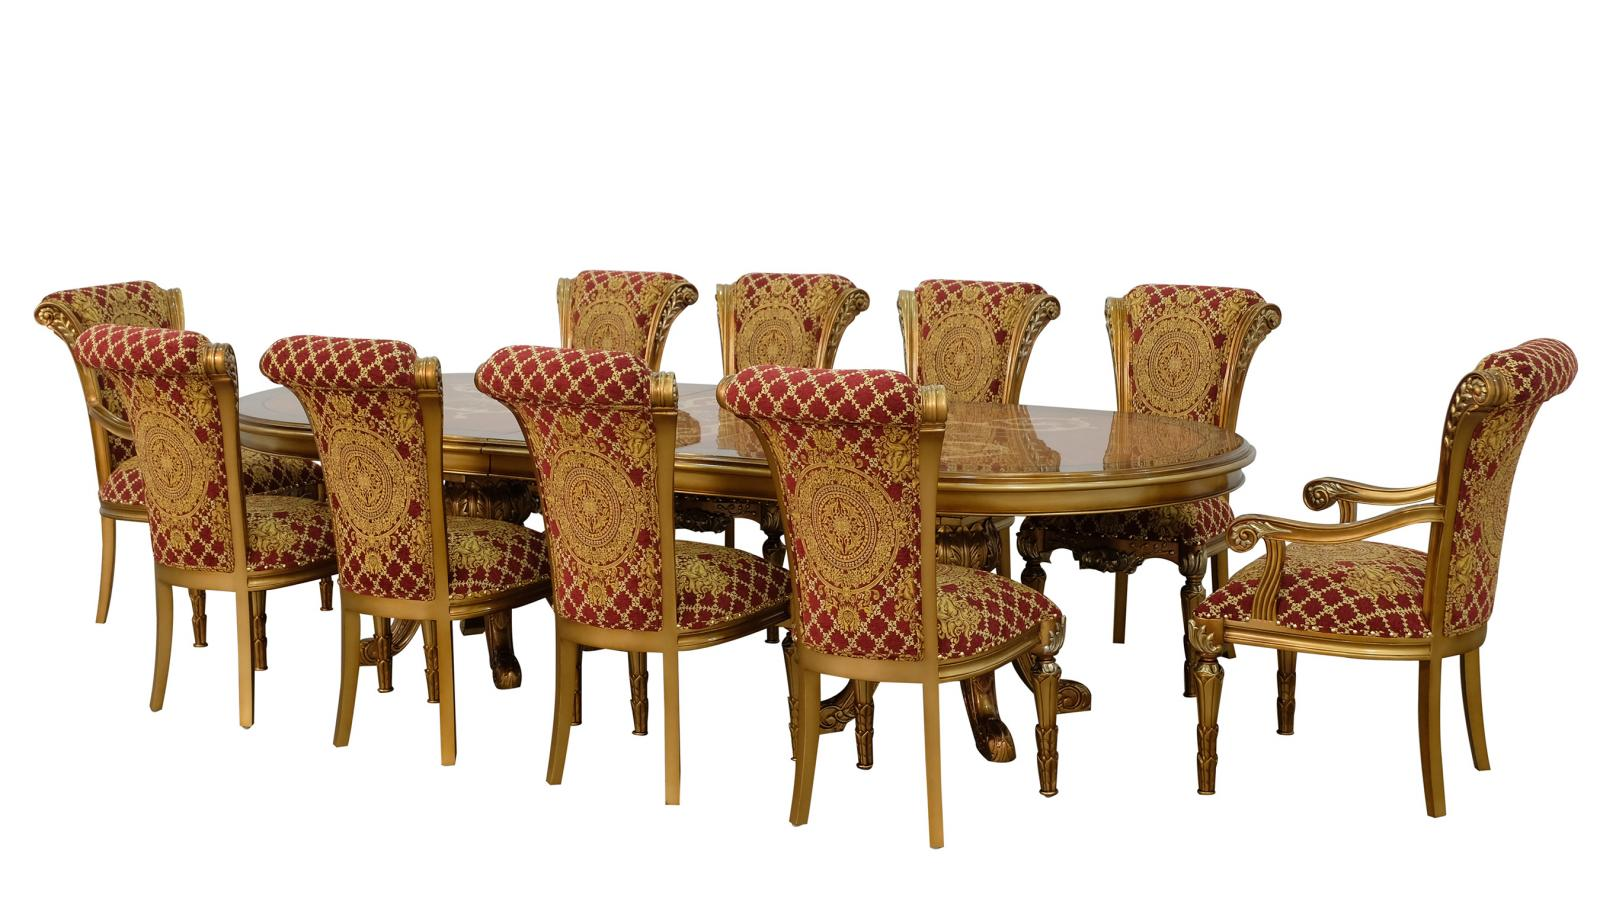 Classic, Traditional Bronze, Gold, Red Fabric and Wood, Solid Hardwood Dining Table Set 11 pcs MAGGIOLINI by European Furniture